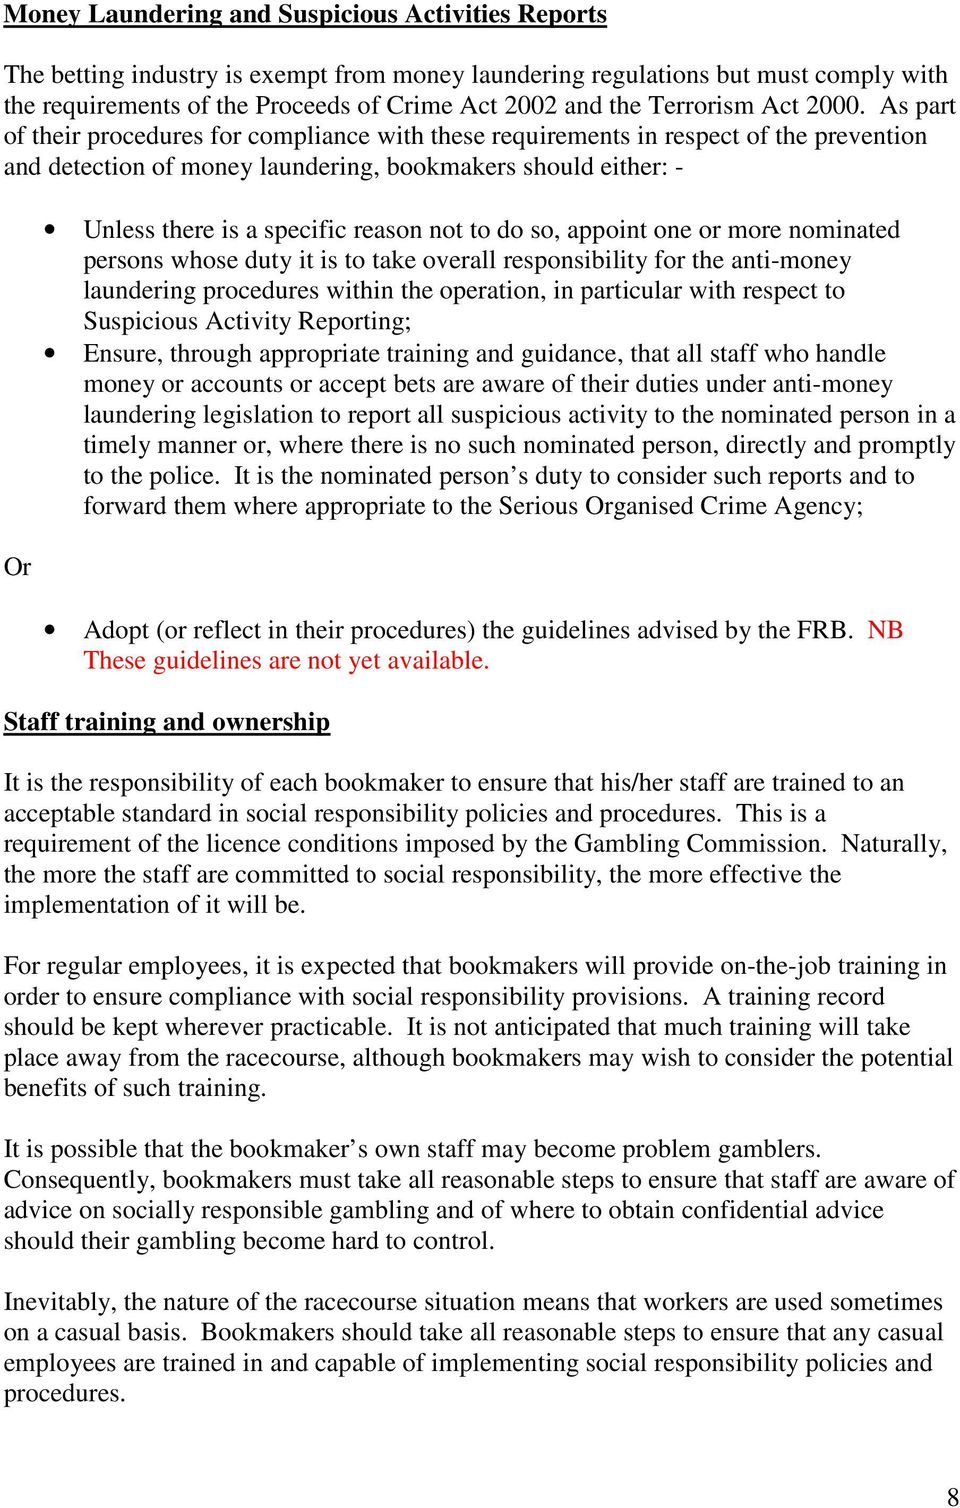 As part of their procedures for compliance with these requirements in respect of the prevention and detection of money laundering, bookmakers should either: - Or Unless there is a specific reason not